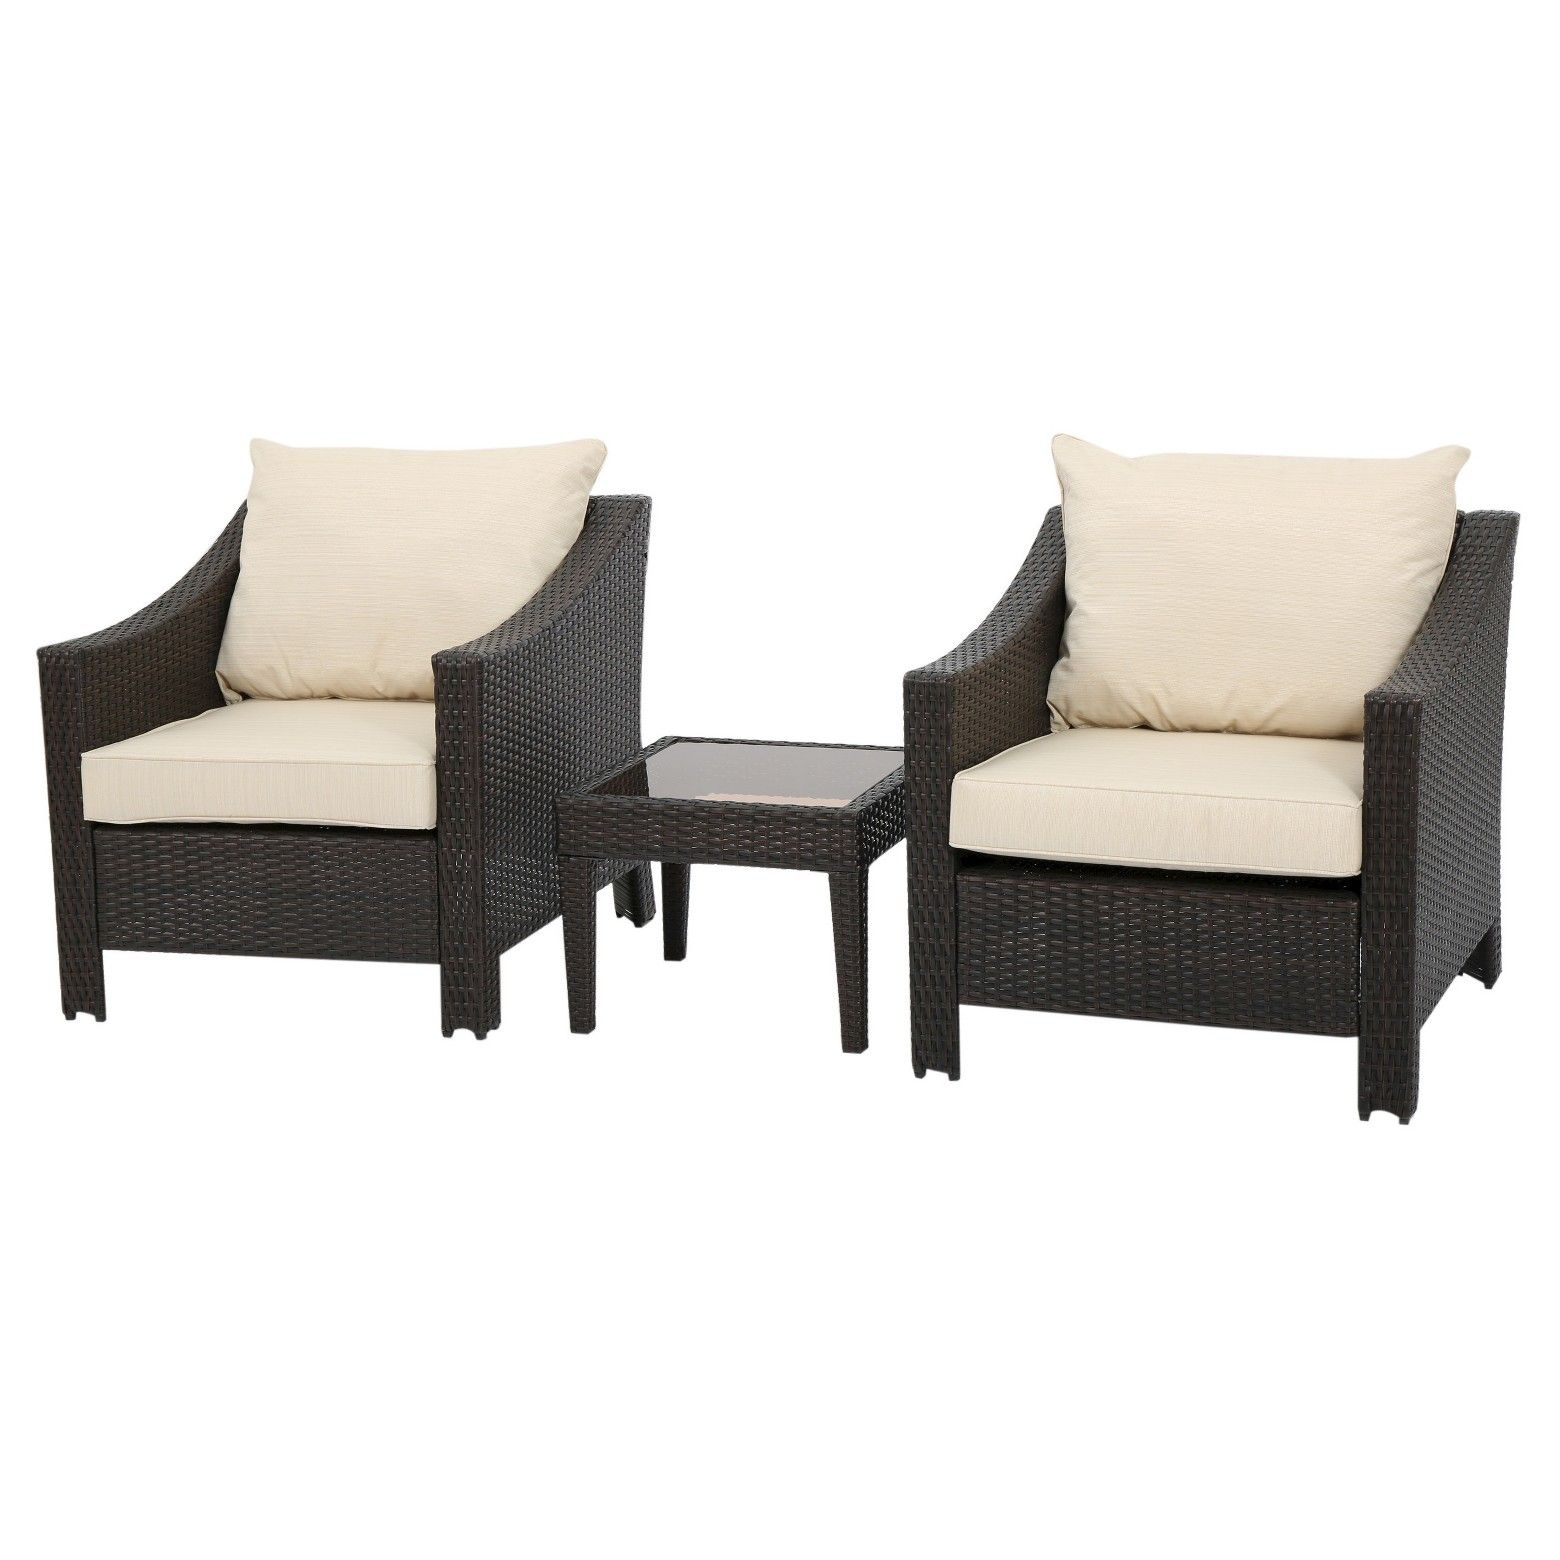 Christopher Knight Home Outdoor Antibes 3pc Wicker Chat Set with ...